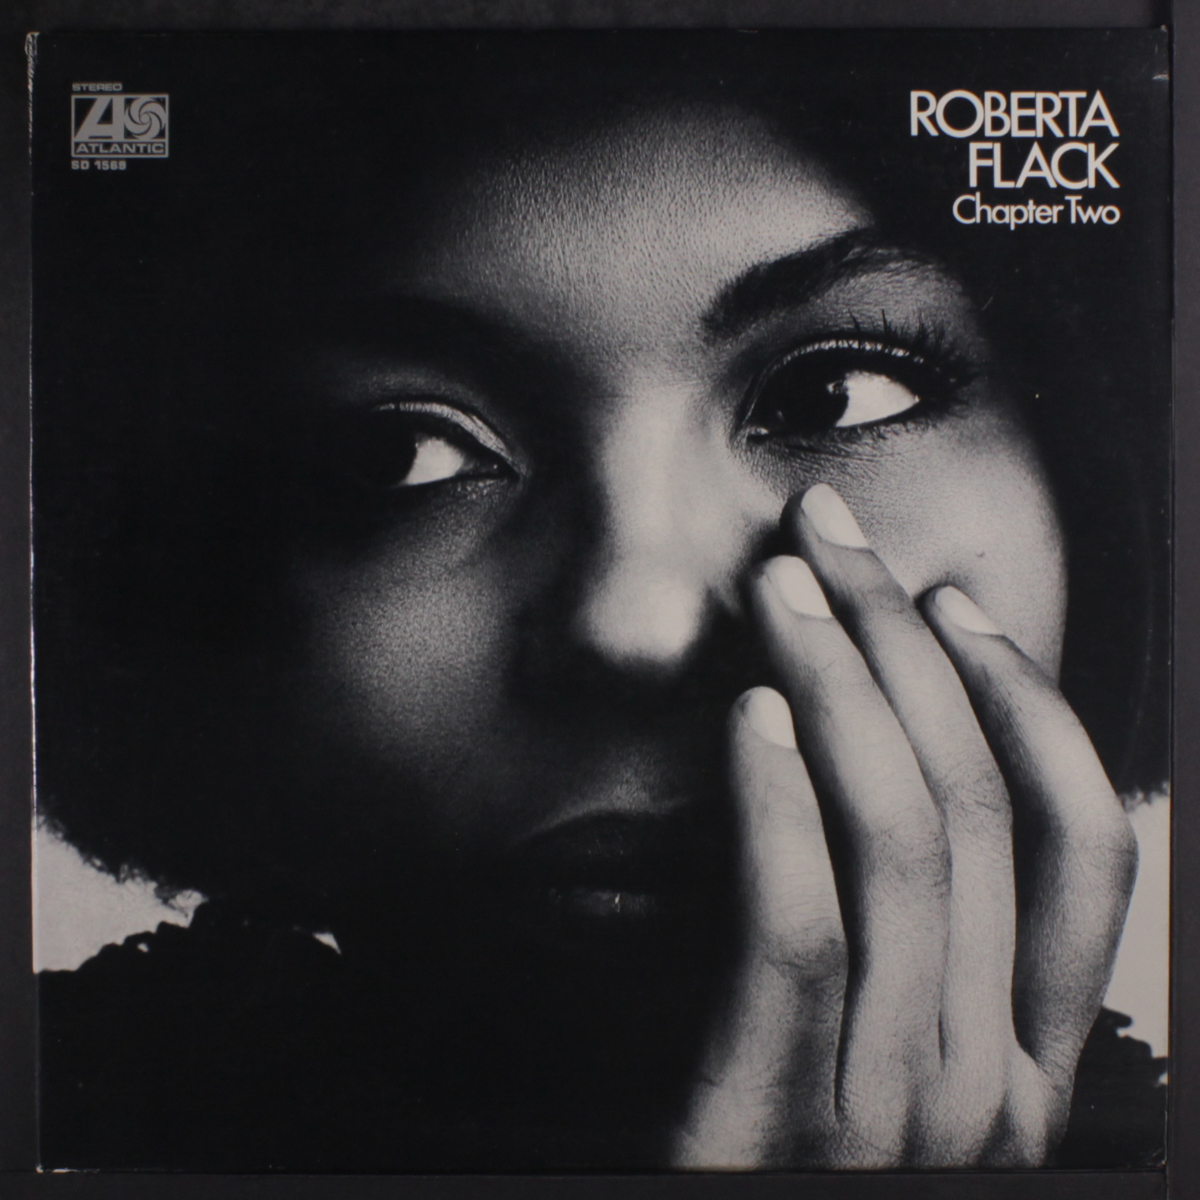 Chapter two by Roberta Flack, LP with recordsale - Ref:3084118503